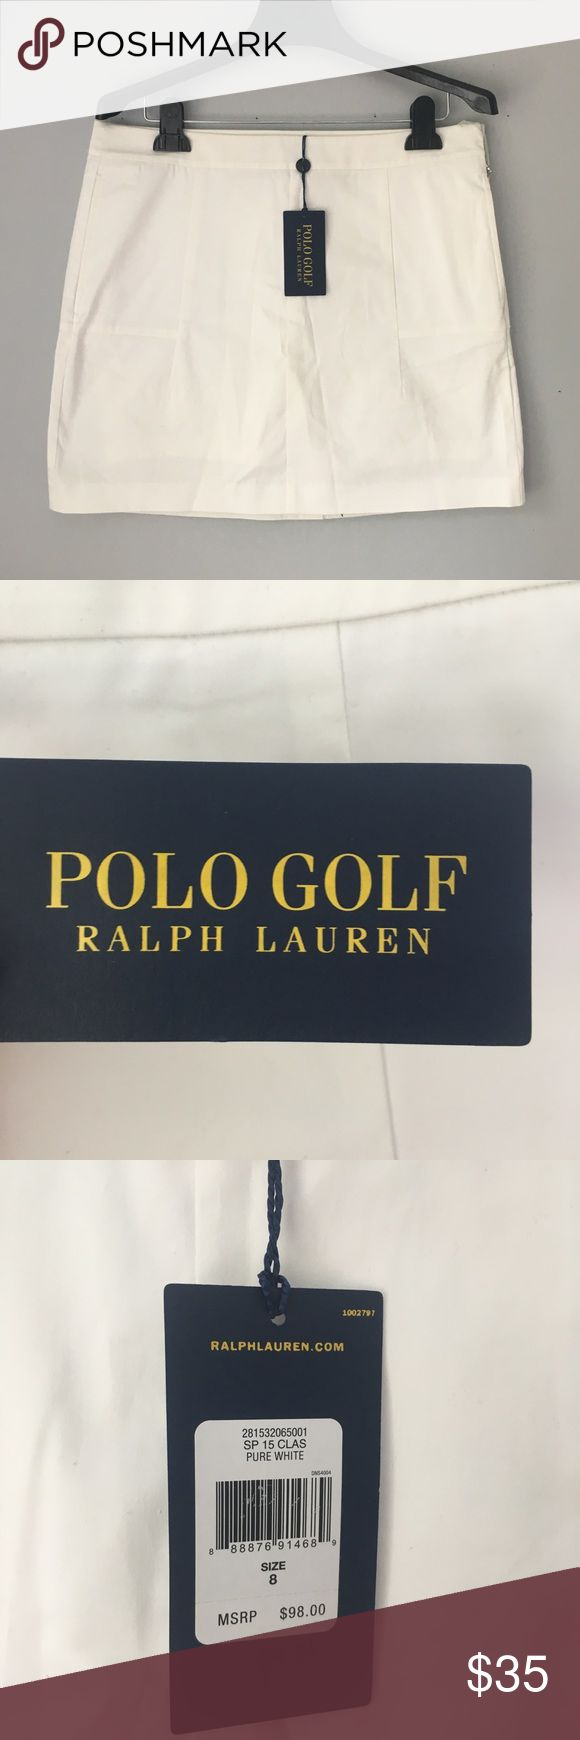 Polo fashion pas cher polo ralph lauren femme france polo de marque - Polo Ralph Lauren Golf Skort Tags Still Attached Brand New Never Worn Tags Still